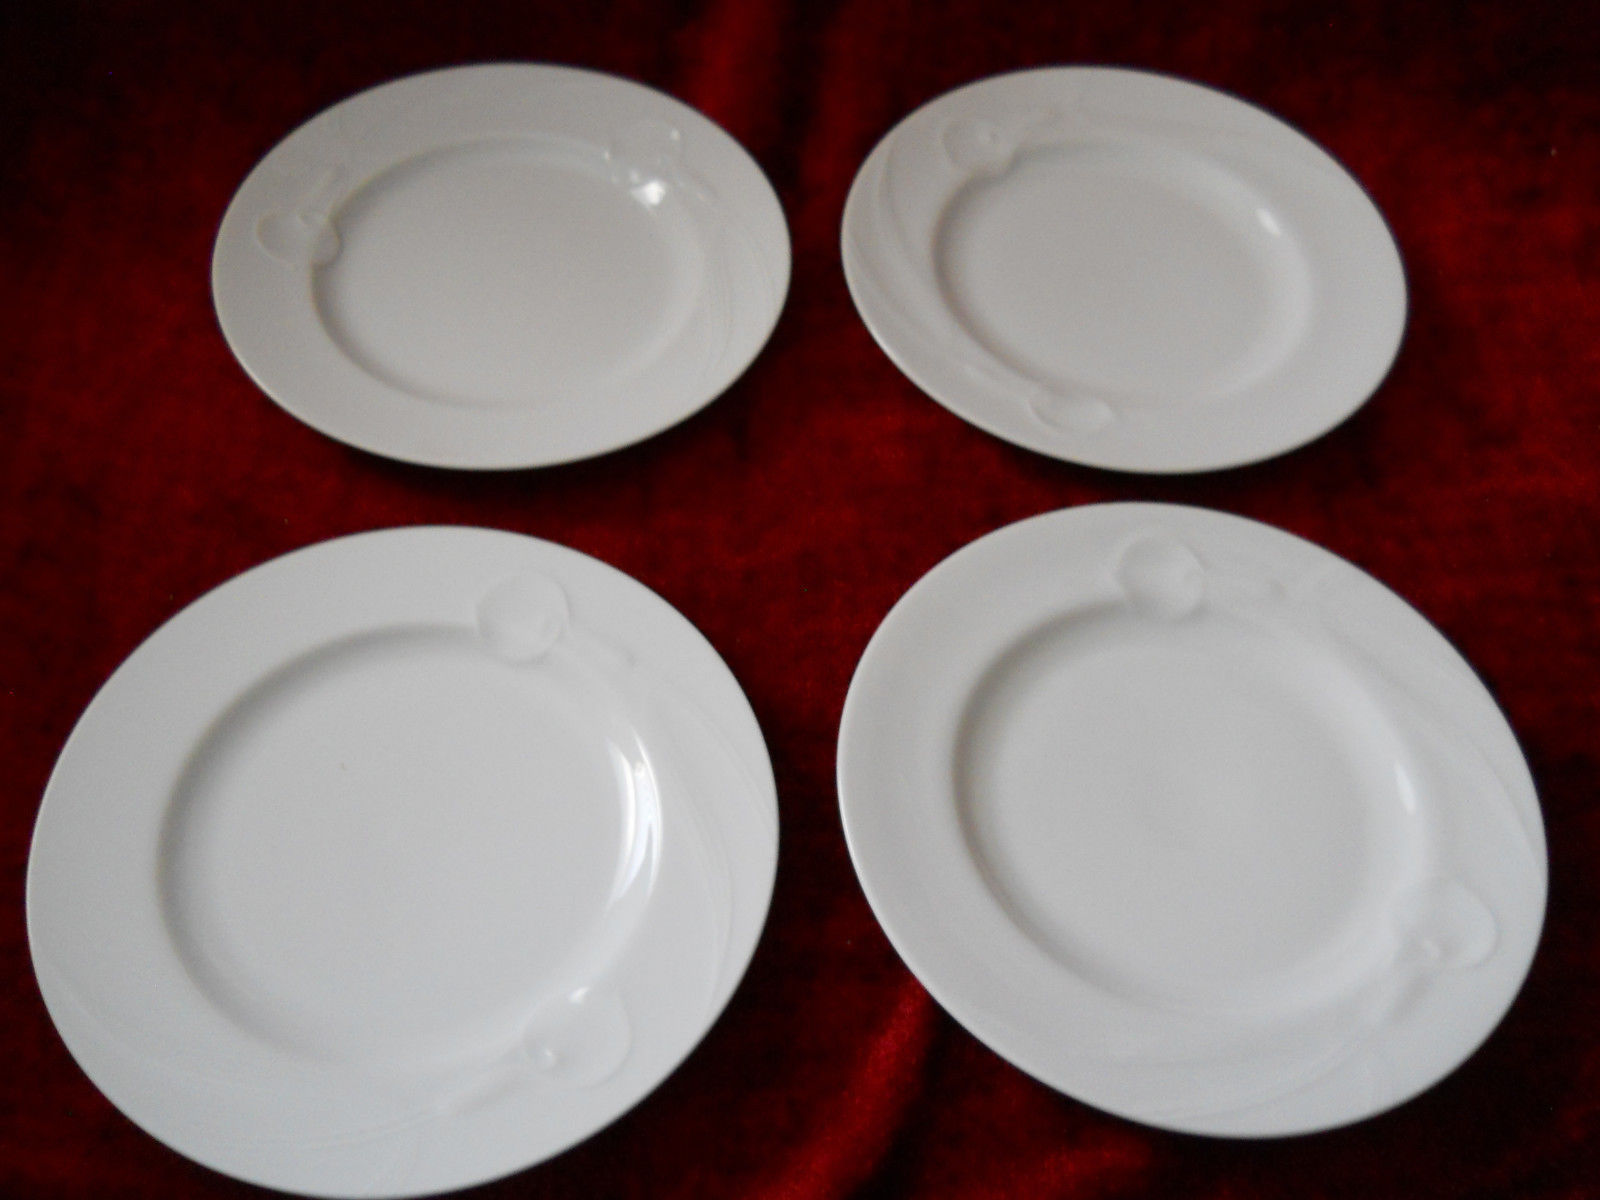 Primary image for Mikasa Classic Flair white set of 4 salad plates